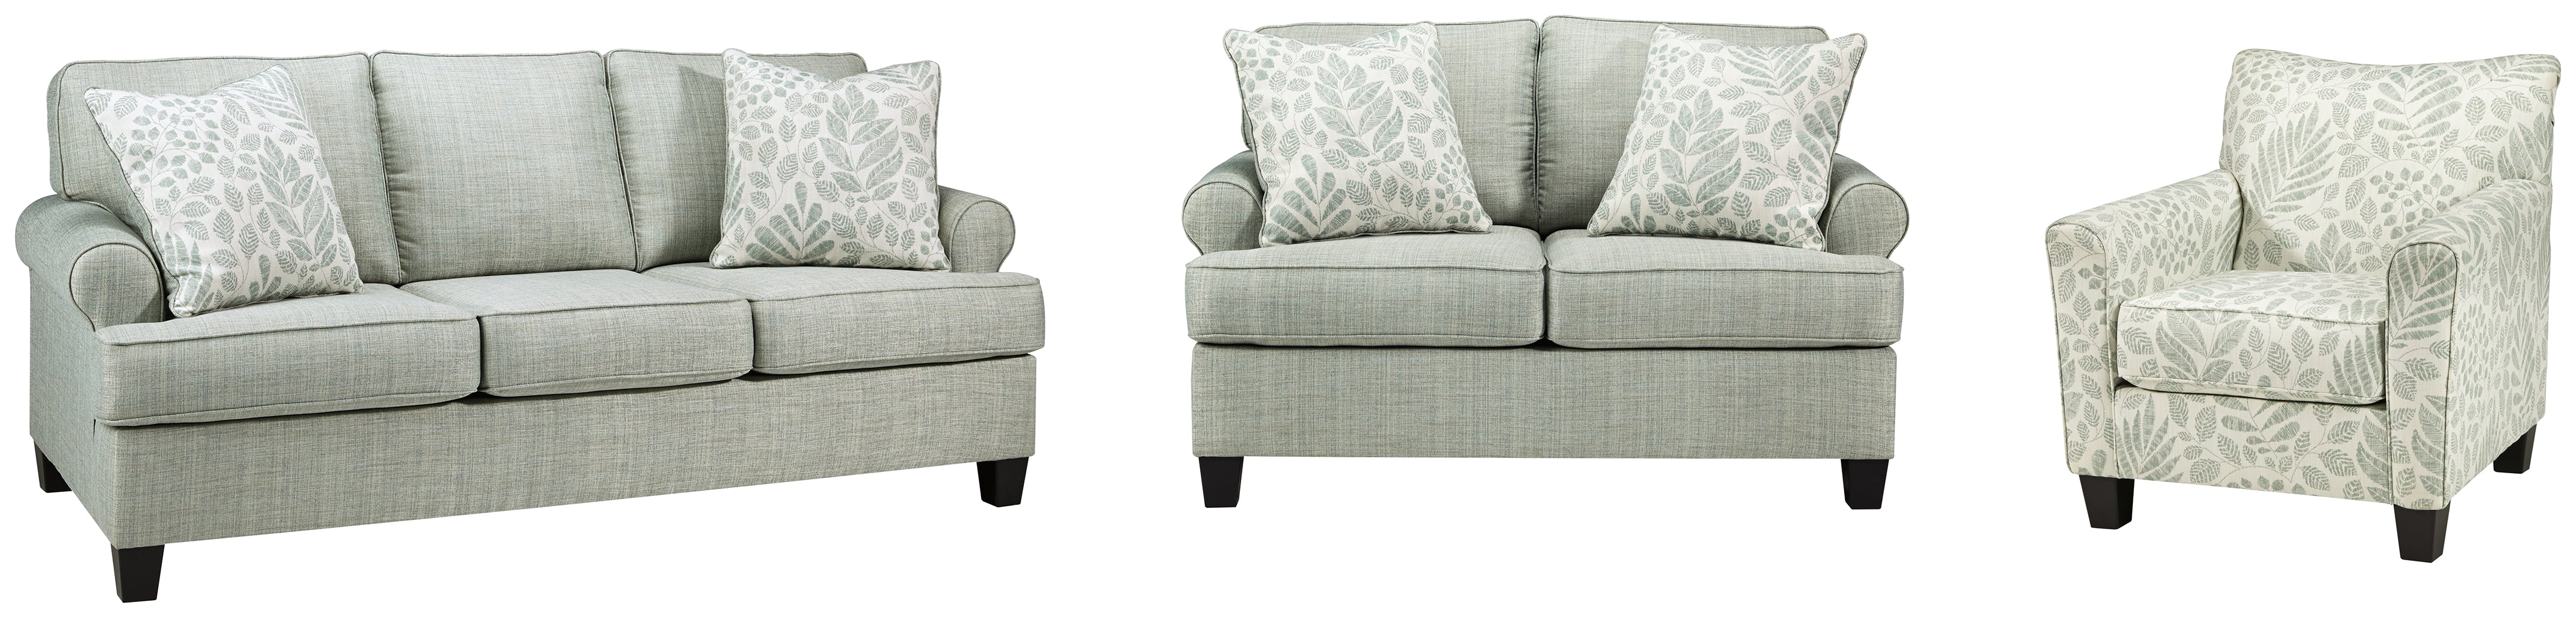 Kilarney Signature Design 3-Piece Upholstery Package